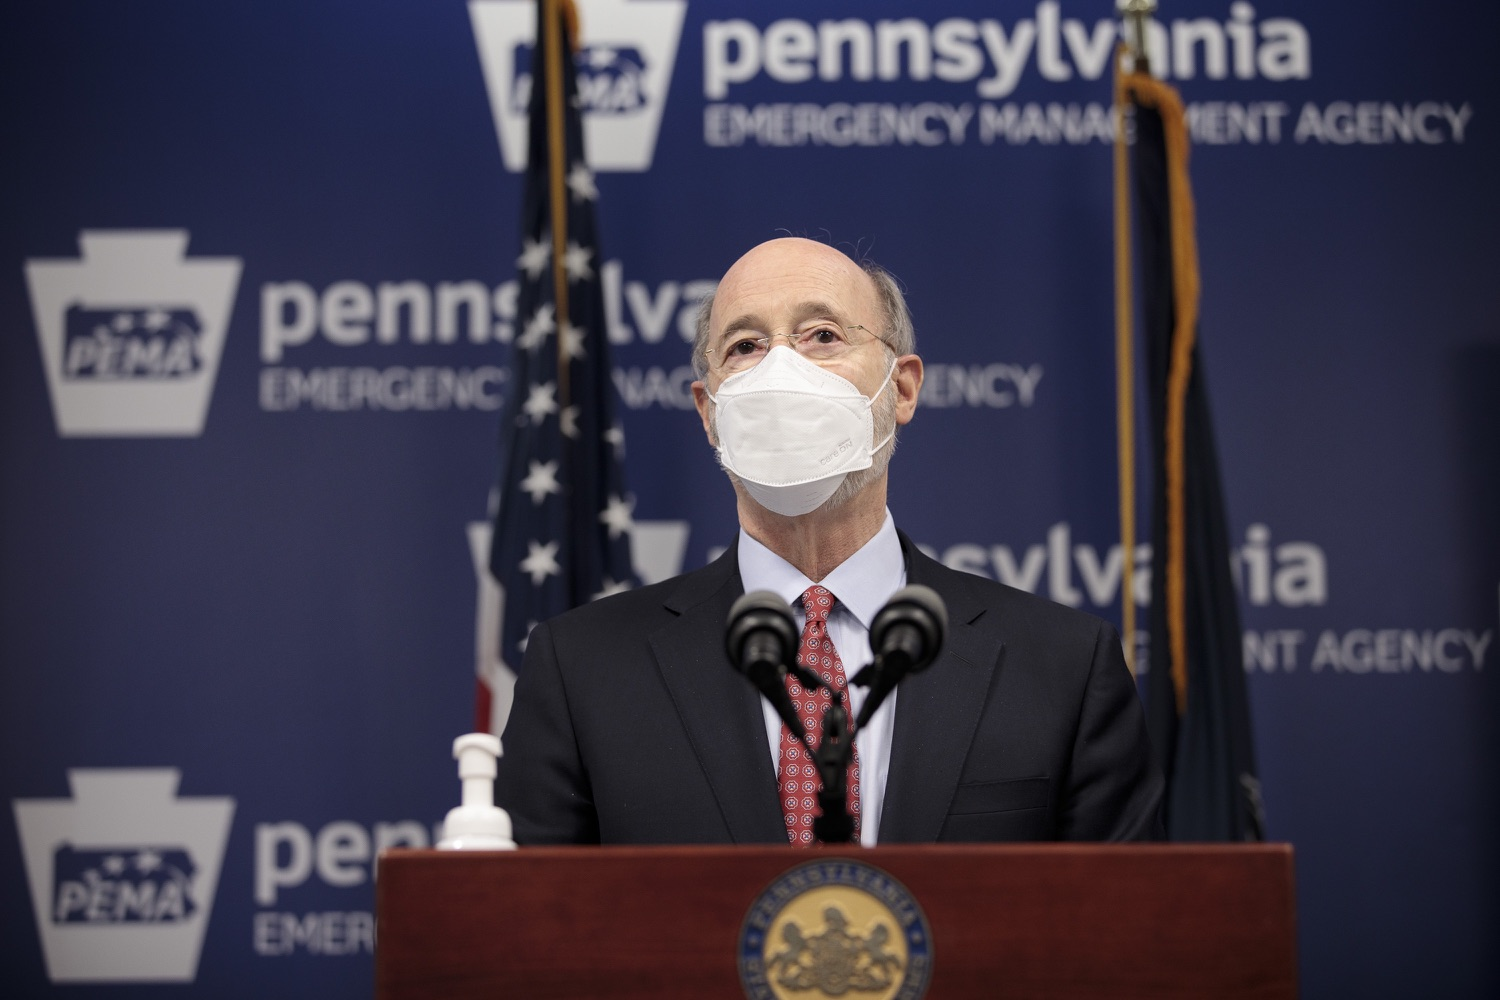 "<a href=""https://filesource.wostreaming.net/commonwealthofpa/photo/18535_gov_nellie_bly_dz_12.jpg"" target=""_blank"">⇣ Download Photo<br></a>Pennsylvania Governor Tom Wolf speaking at the press conference.  Governor Tom Wolf wants to bet on 44,000 students to help them earn a college degree while graduating with less debt and building successful lives in Pennsylvania. Today, the governor held a press conference to discuss how his historic Nellie Bly Scholarship Program would provide need-based financial assistance for students at 14 universities in the states system. Harrisburg, PA  February 17, 2021"